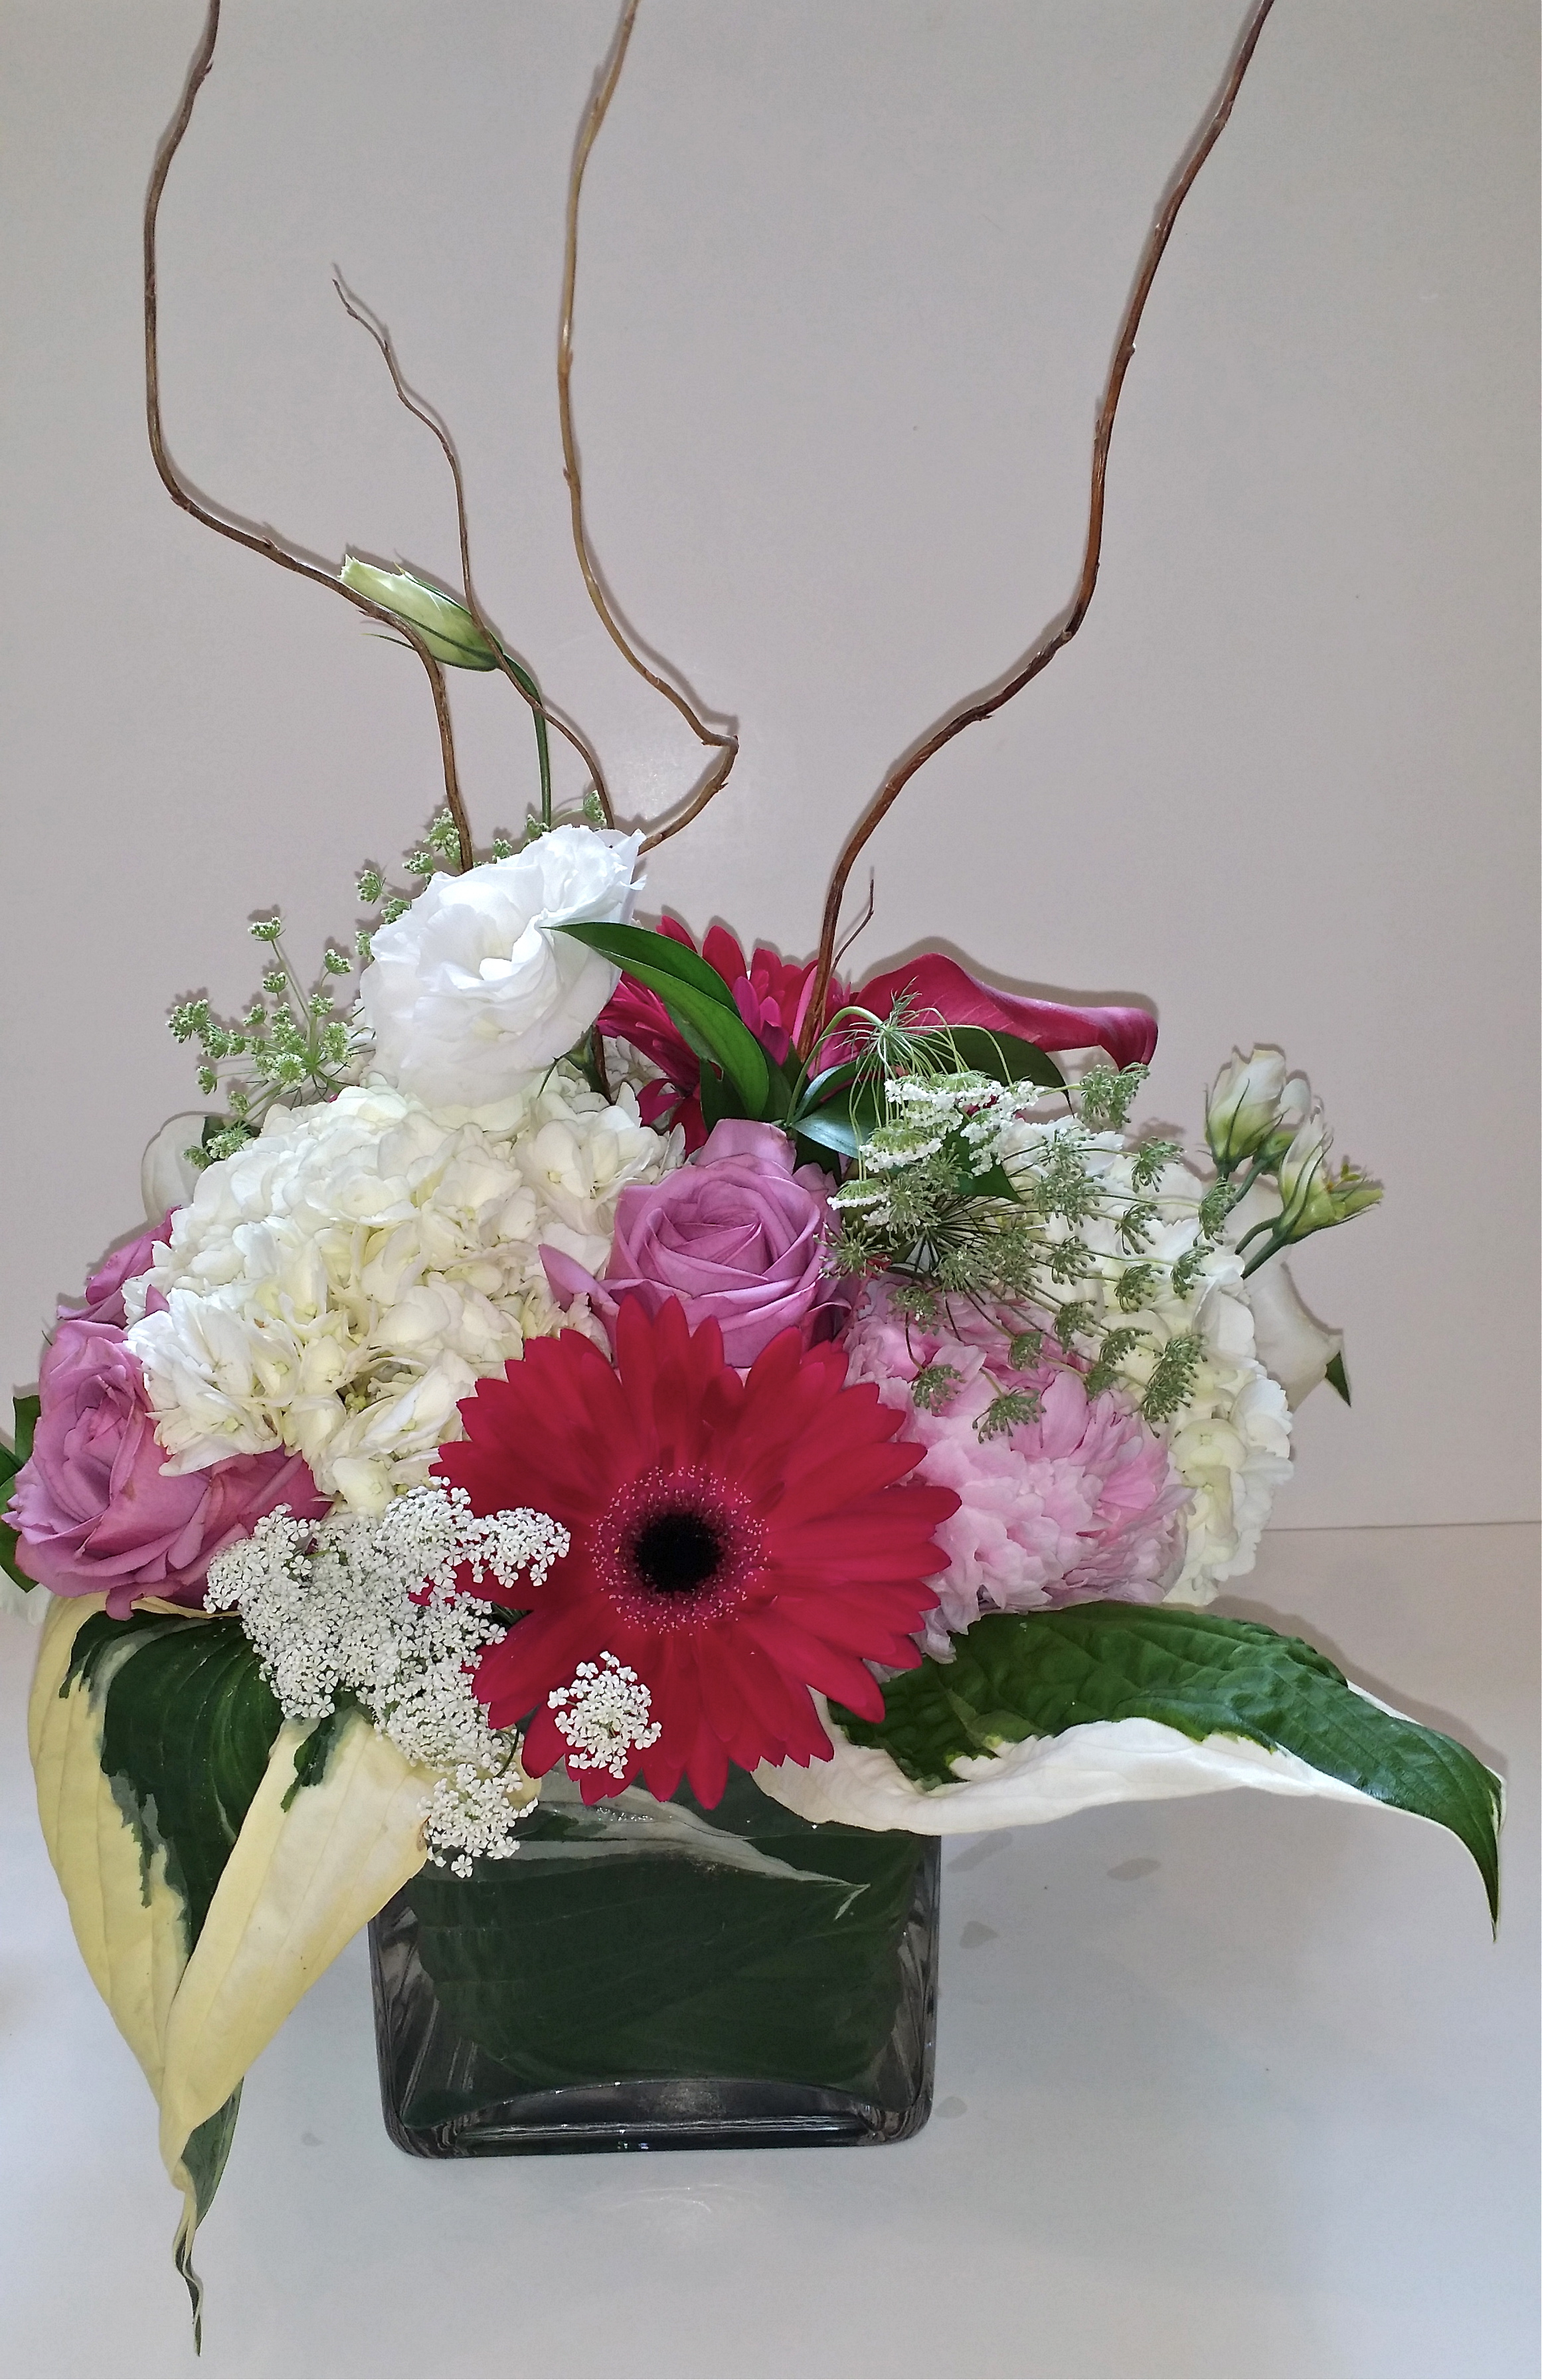 A simple arrangement for the table picks up the flowers of the Bride's bouquet.